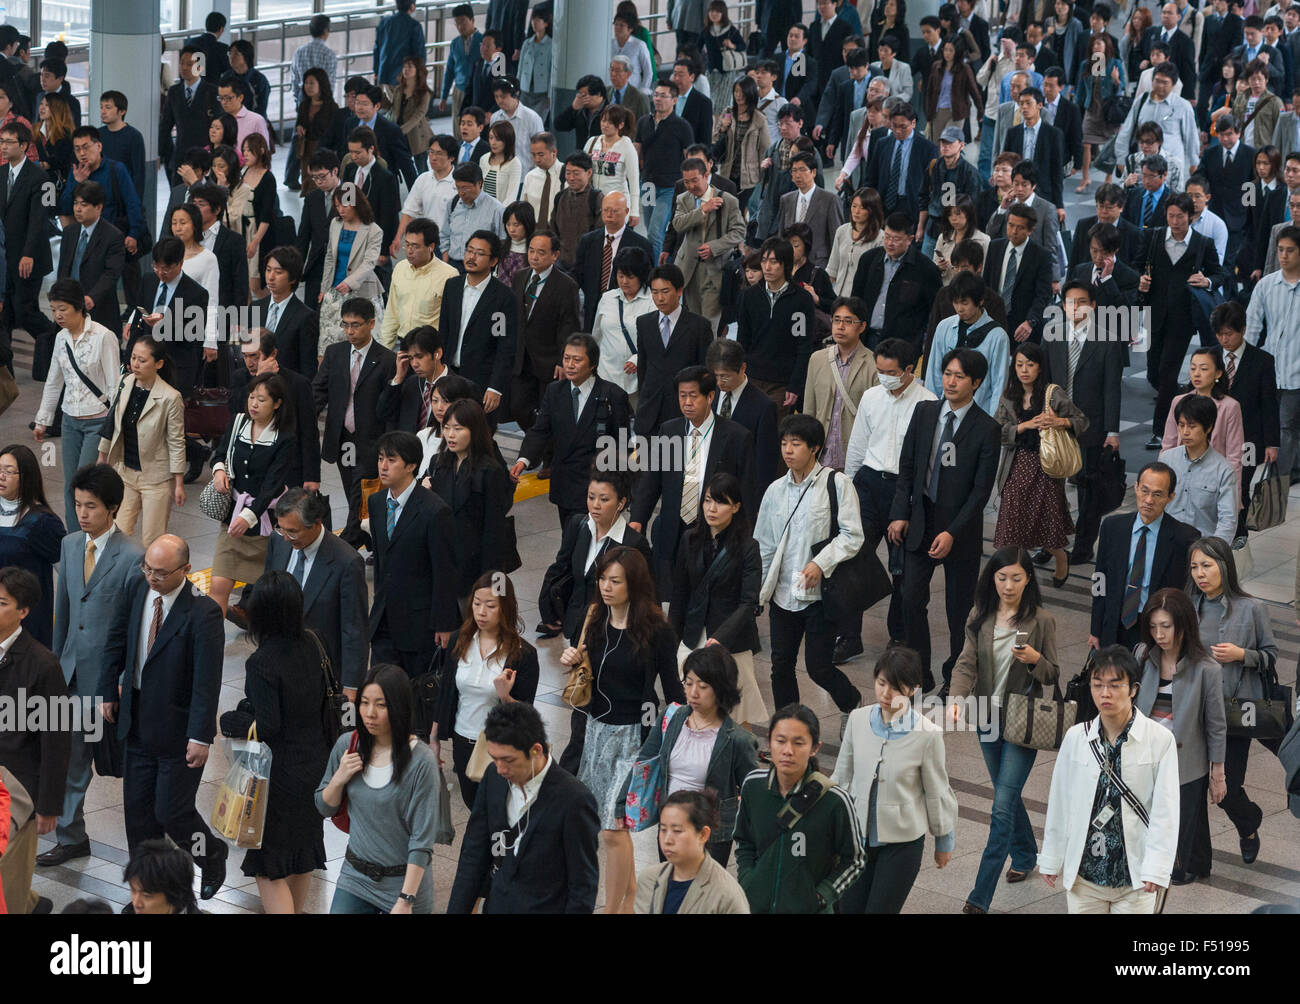 Many commuters walking through railway station during morning rush hour in central Tokyo Japan - Stock Image